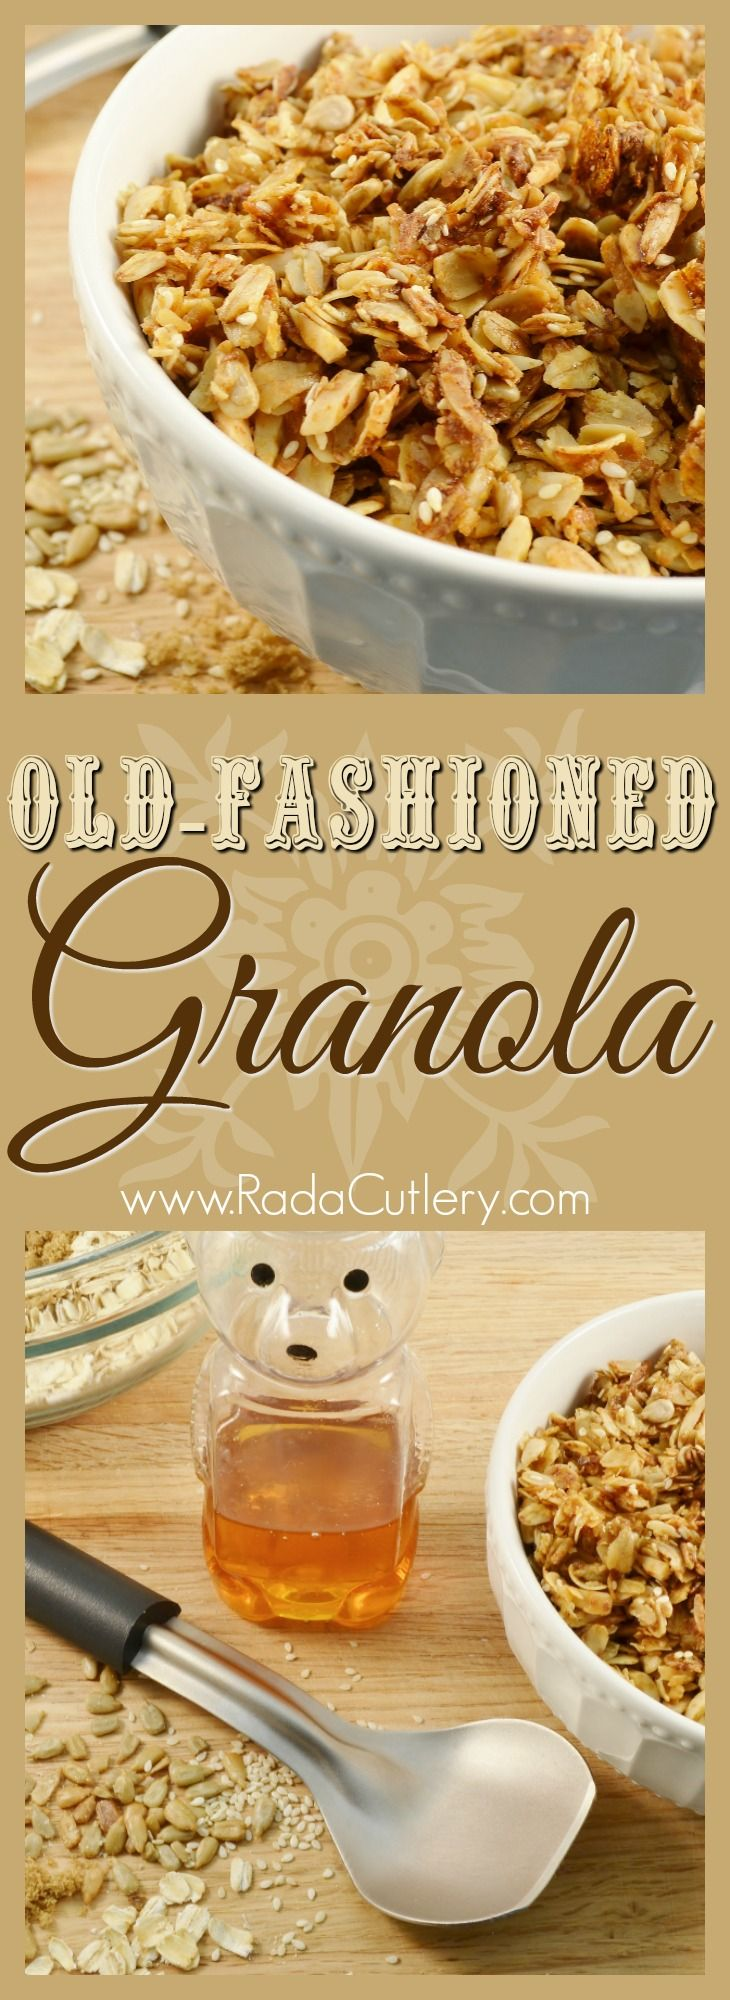 Instead of buying granola the next time you go shopping, buy the ingredients! This amazing homemade granola recipe tastes much better than the store-bought kind and is delightfully easy to make. Make some and watch as your friends and family rave! #granola